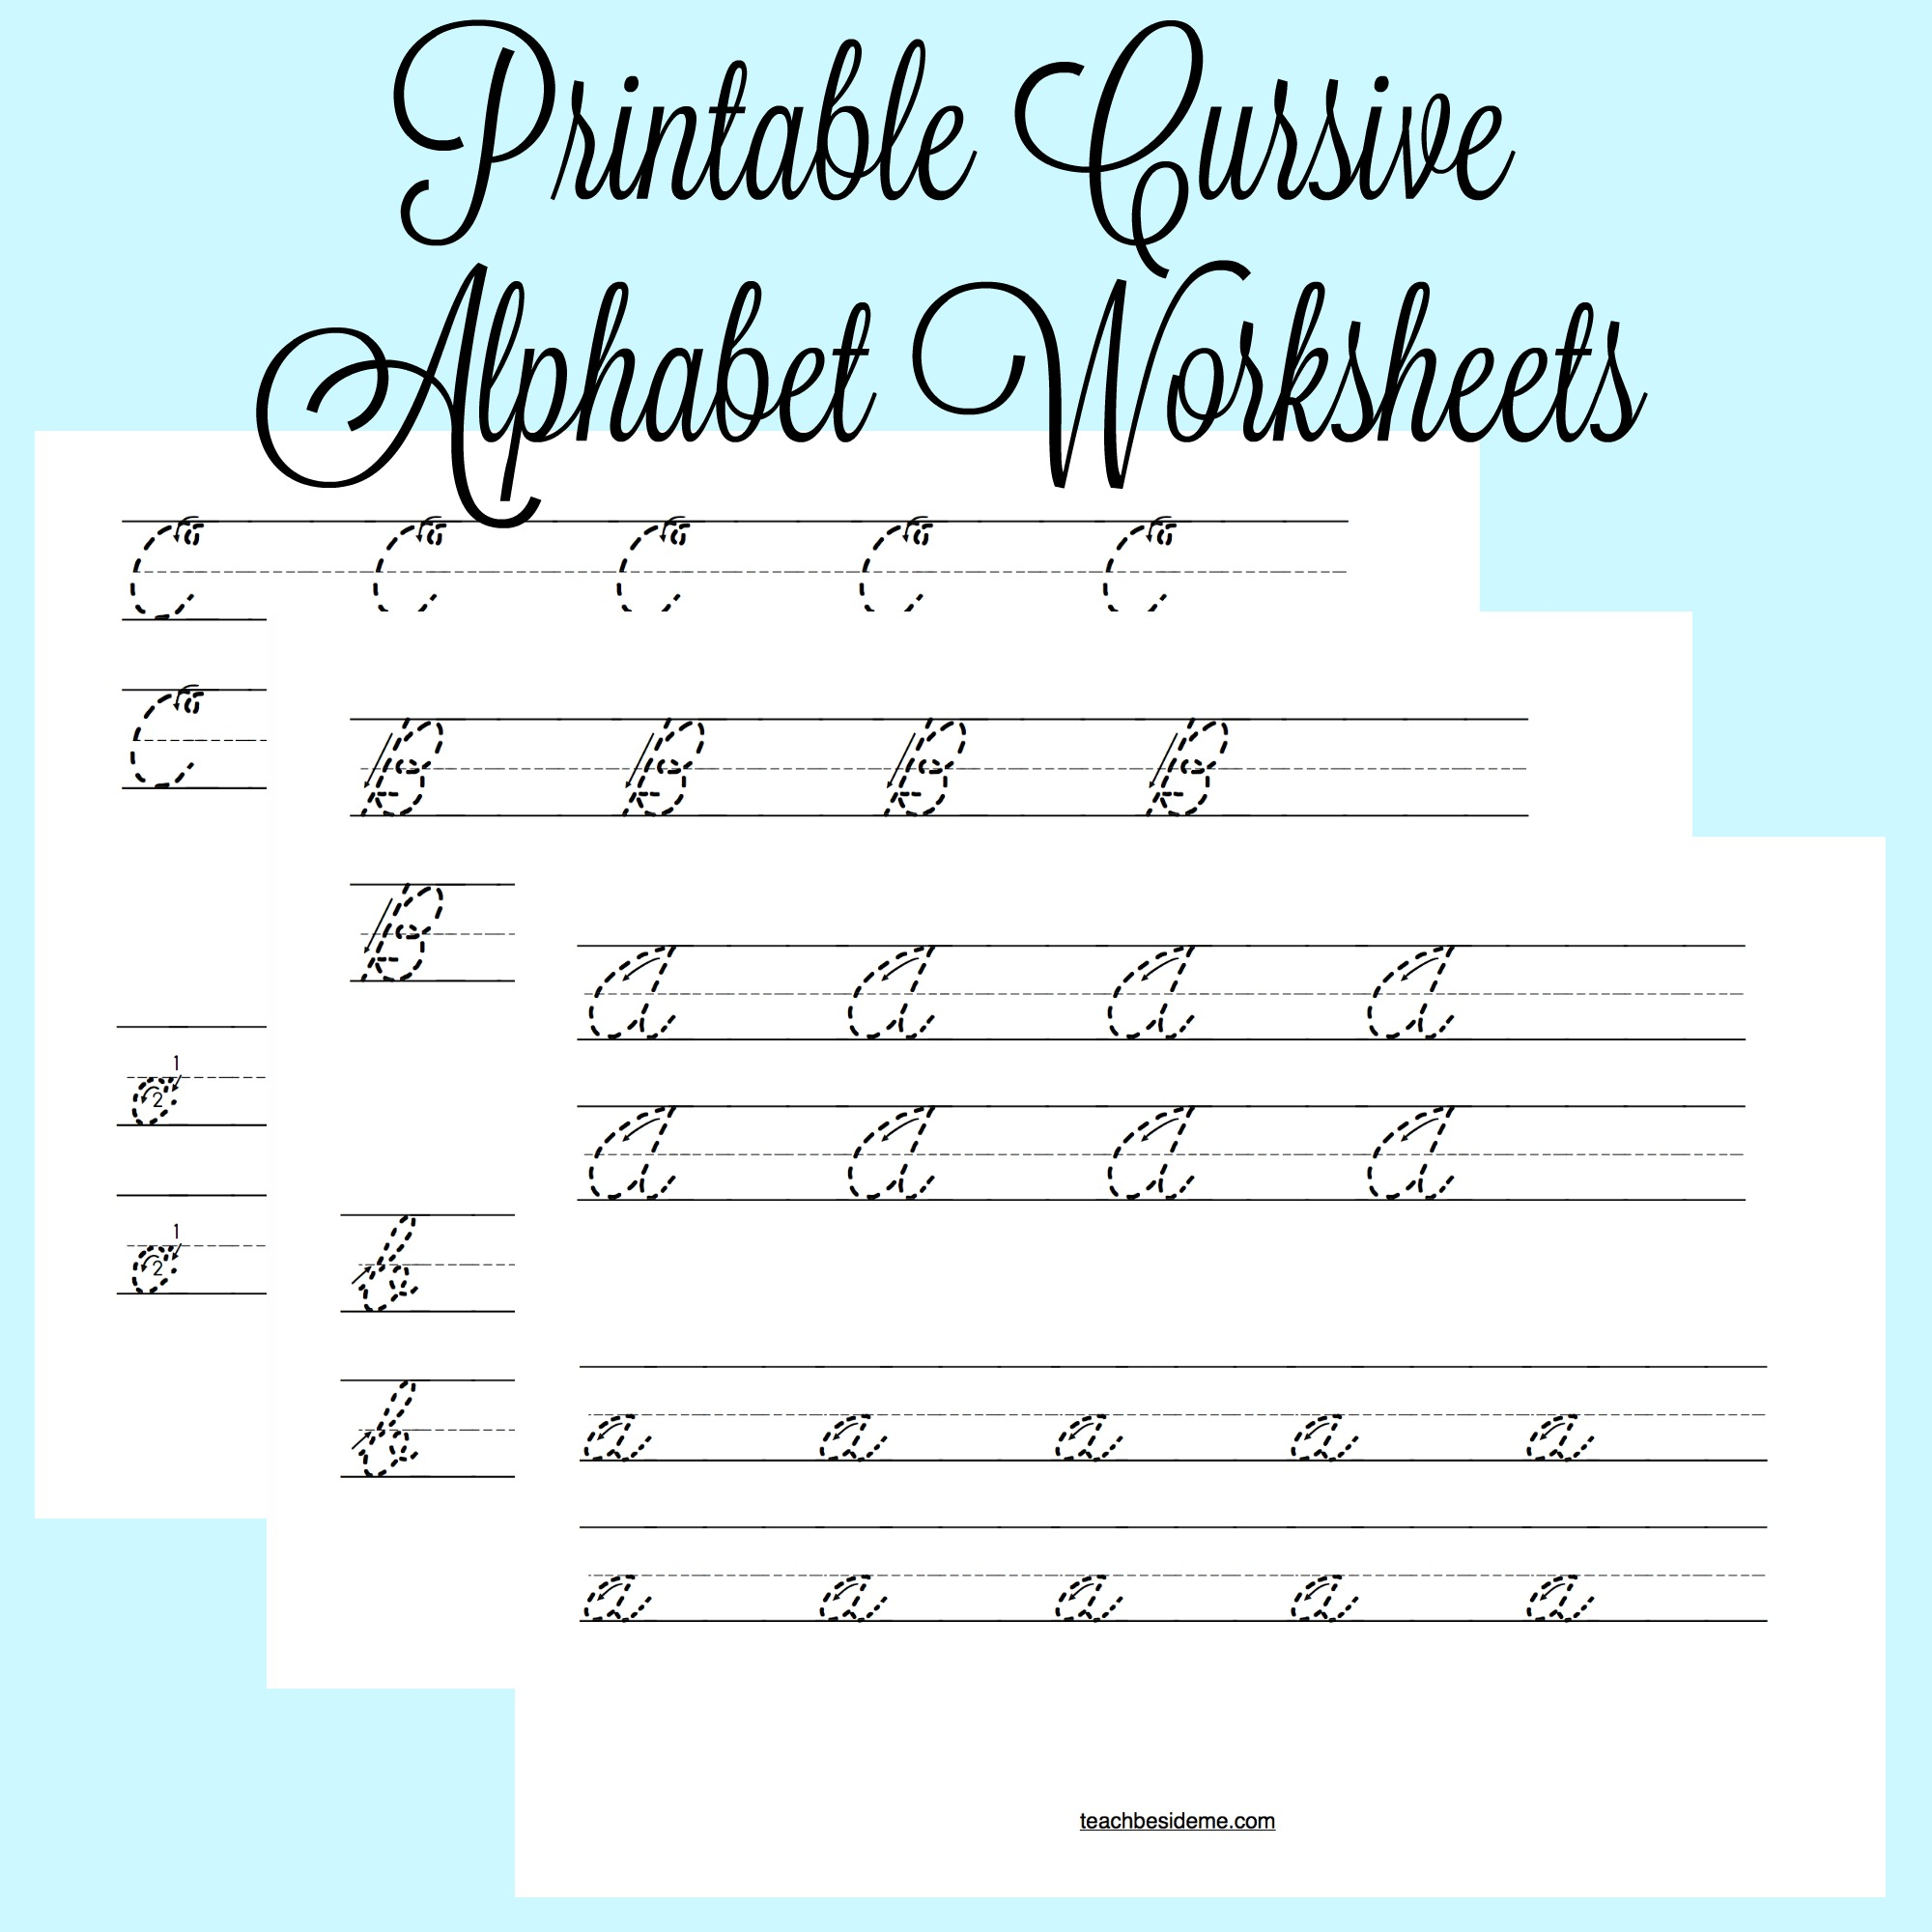 image about Free Printable Cursive Alphabet titled Cursive Alphabet Worksheets Coach Beside Me